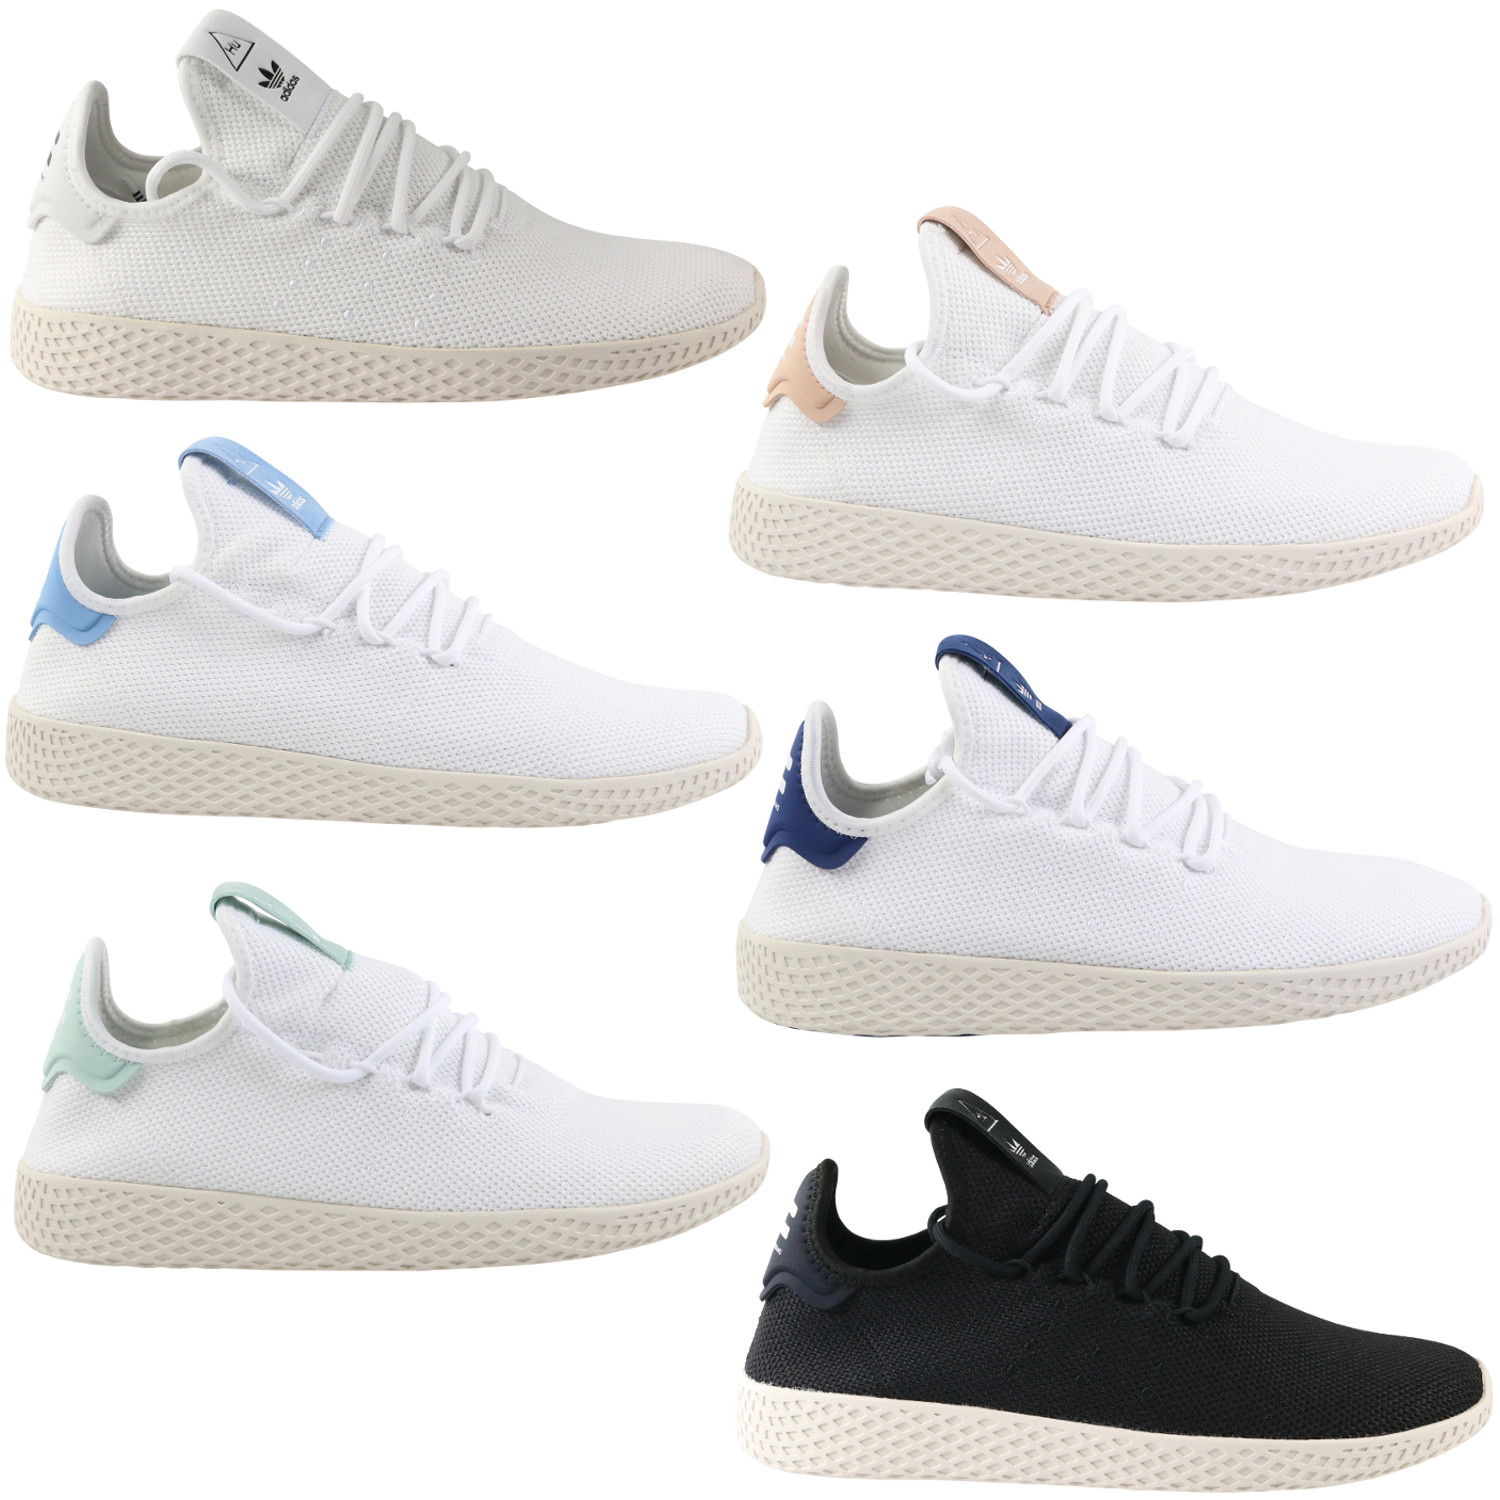 Details zu adidas Originals Pharrell Williams Tennis HU Sneaker Schuhe  Herren Damen